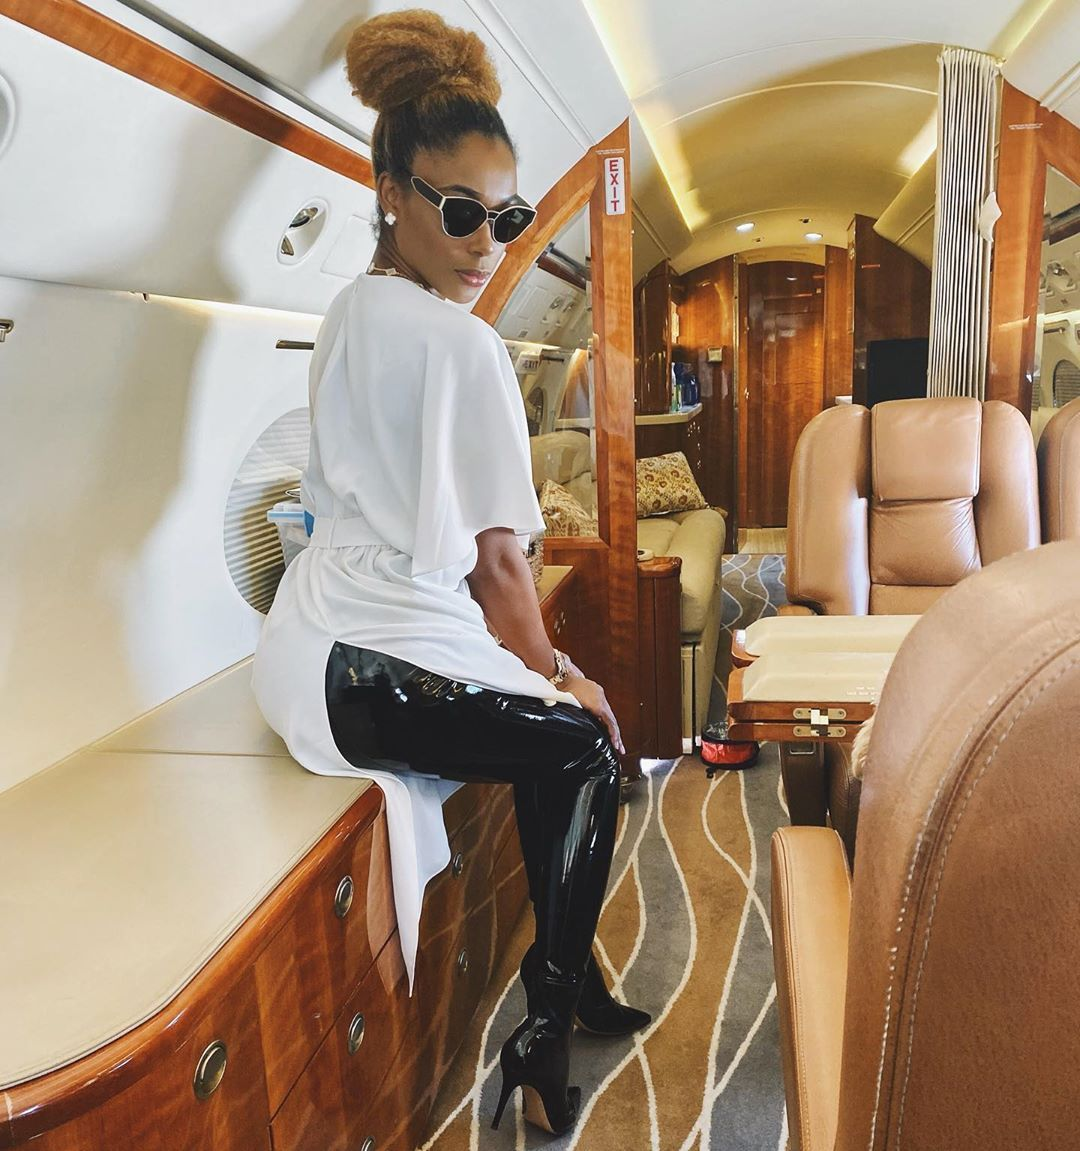 """In Dominique Deveraux, Slay.'s Instagram profile post: """"Weekend getaway to the slopes. ⛷⛷ • • • • #fashionblogger #fashion #shoppingaddict #luxury #lookoftheday #ootd #ootdfashion"""""""